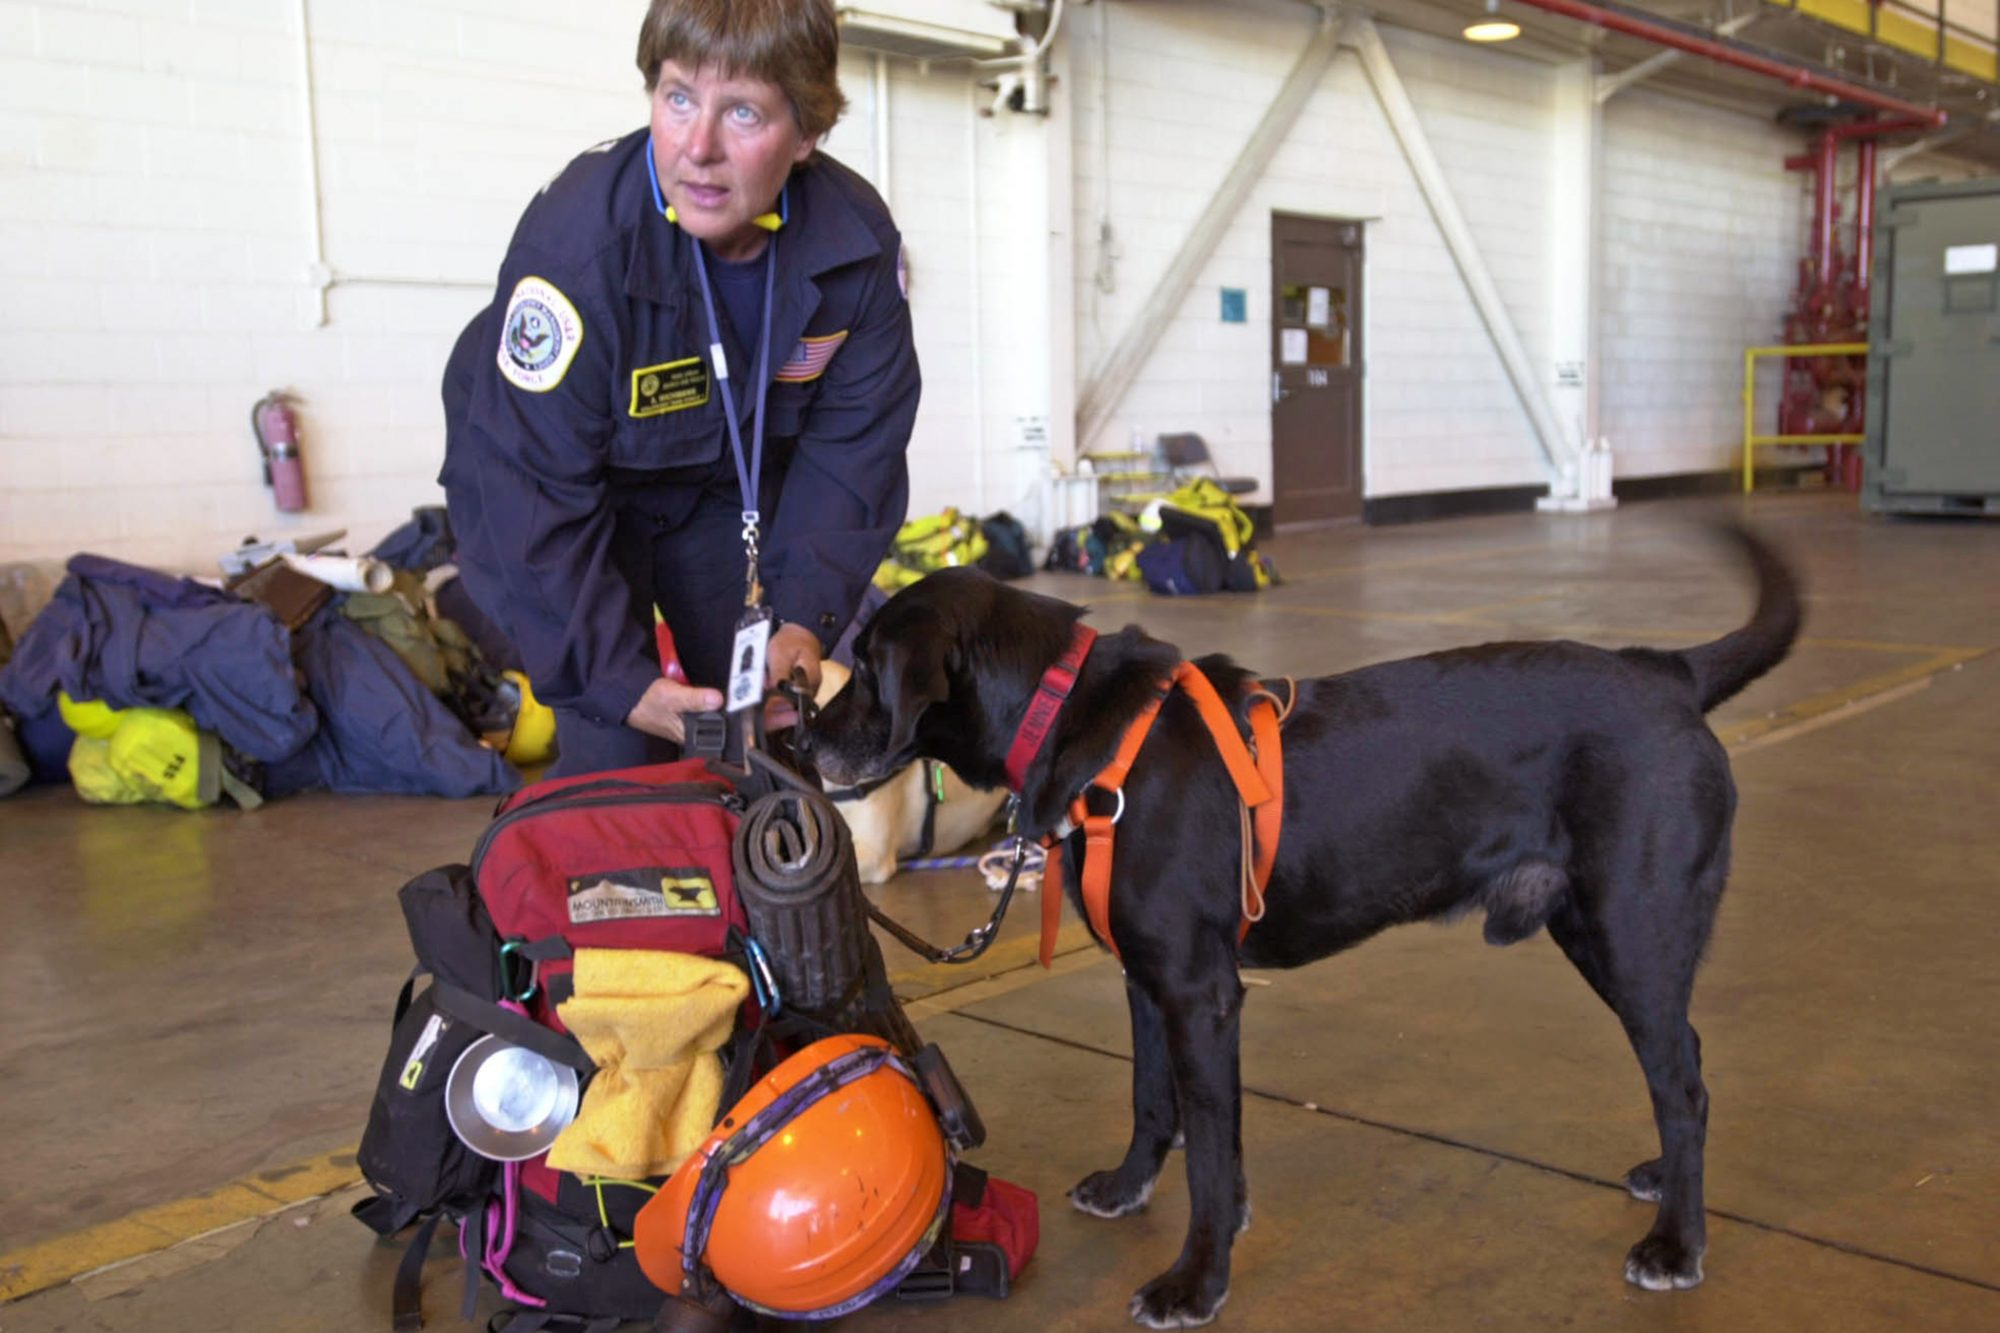 9/11 service dog Jenner standing with Ann Wichmann indoors